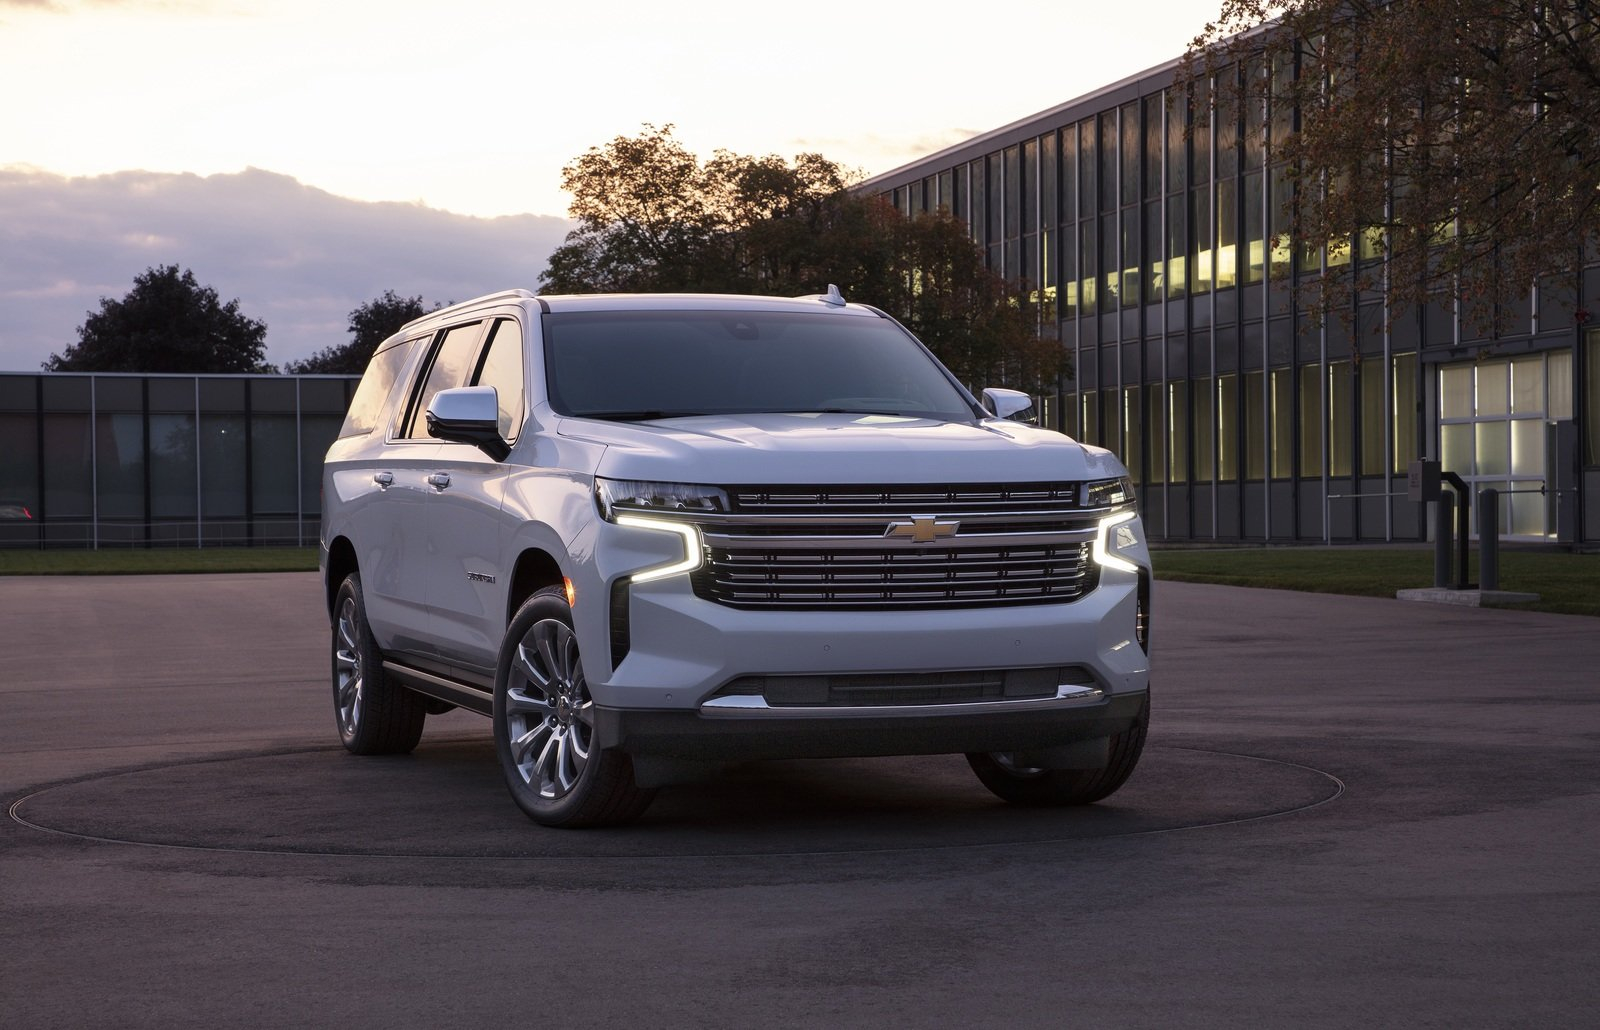 2021 Chevy Suburban 2021 Chevy Traverse High Country Review, Price, Interior